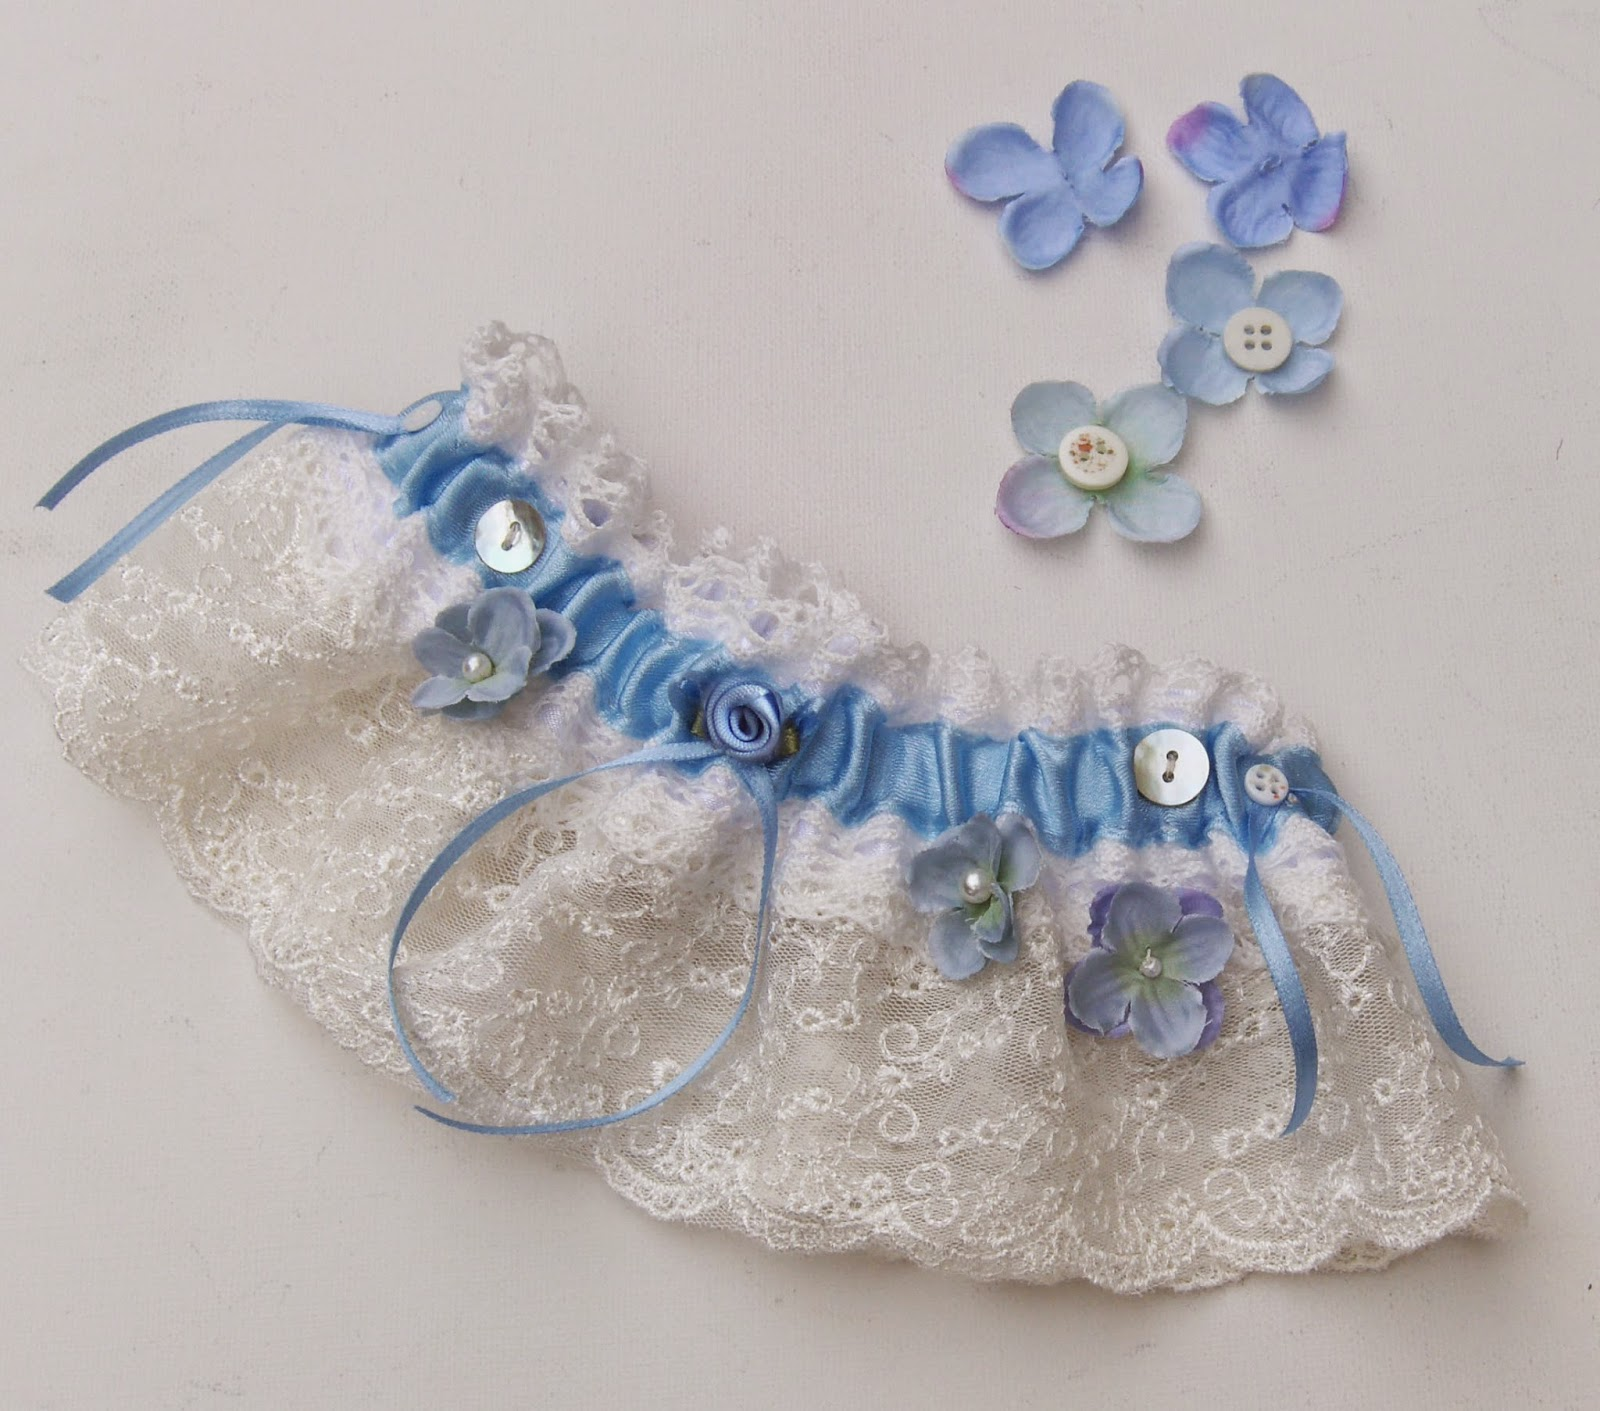 https://www.etsy.com/uk/listing/204198115/bridal-garter-shabby-chic-wedding-blue?ref=shop_home_active_5